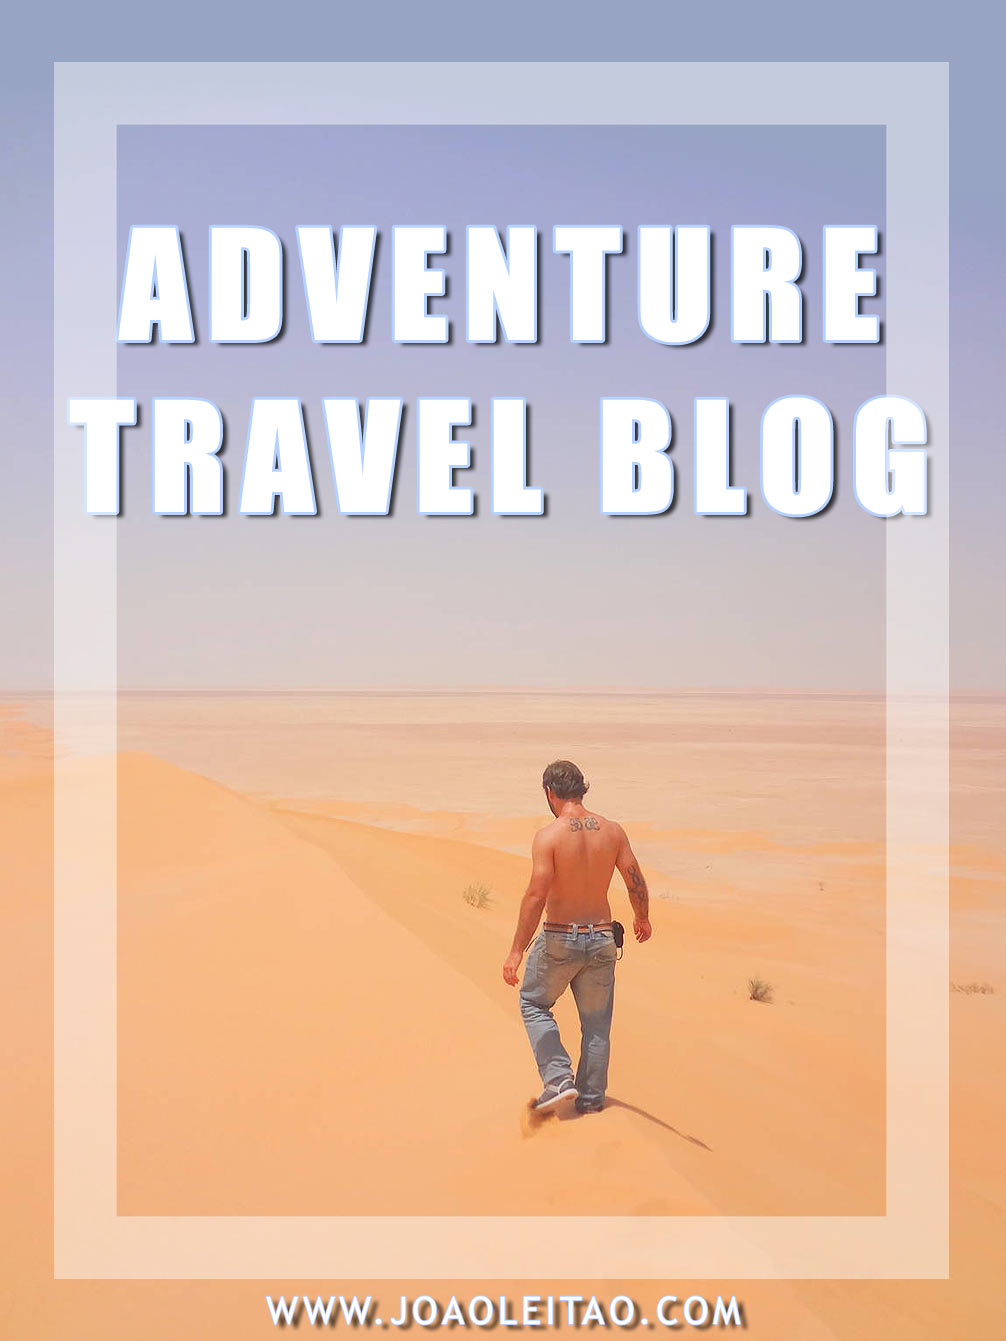 Adventure travel blog